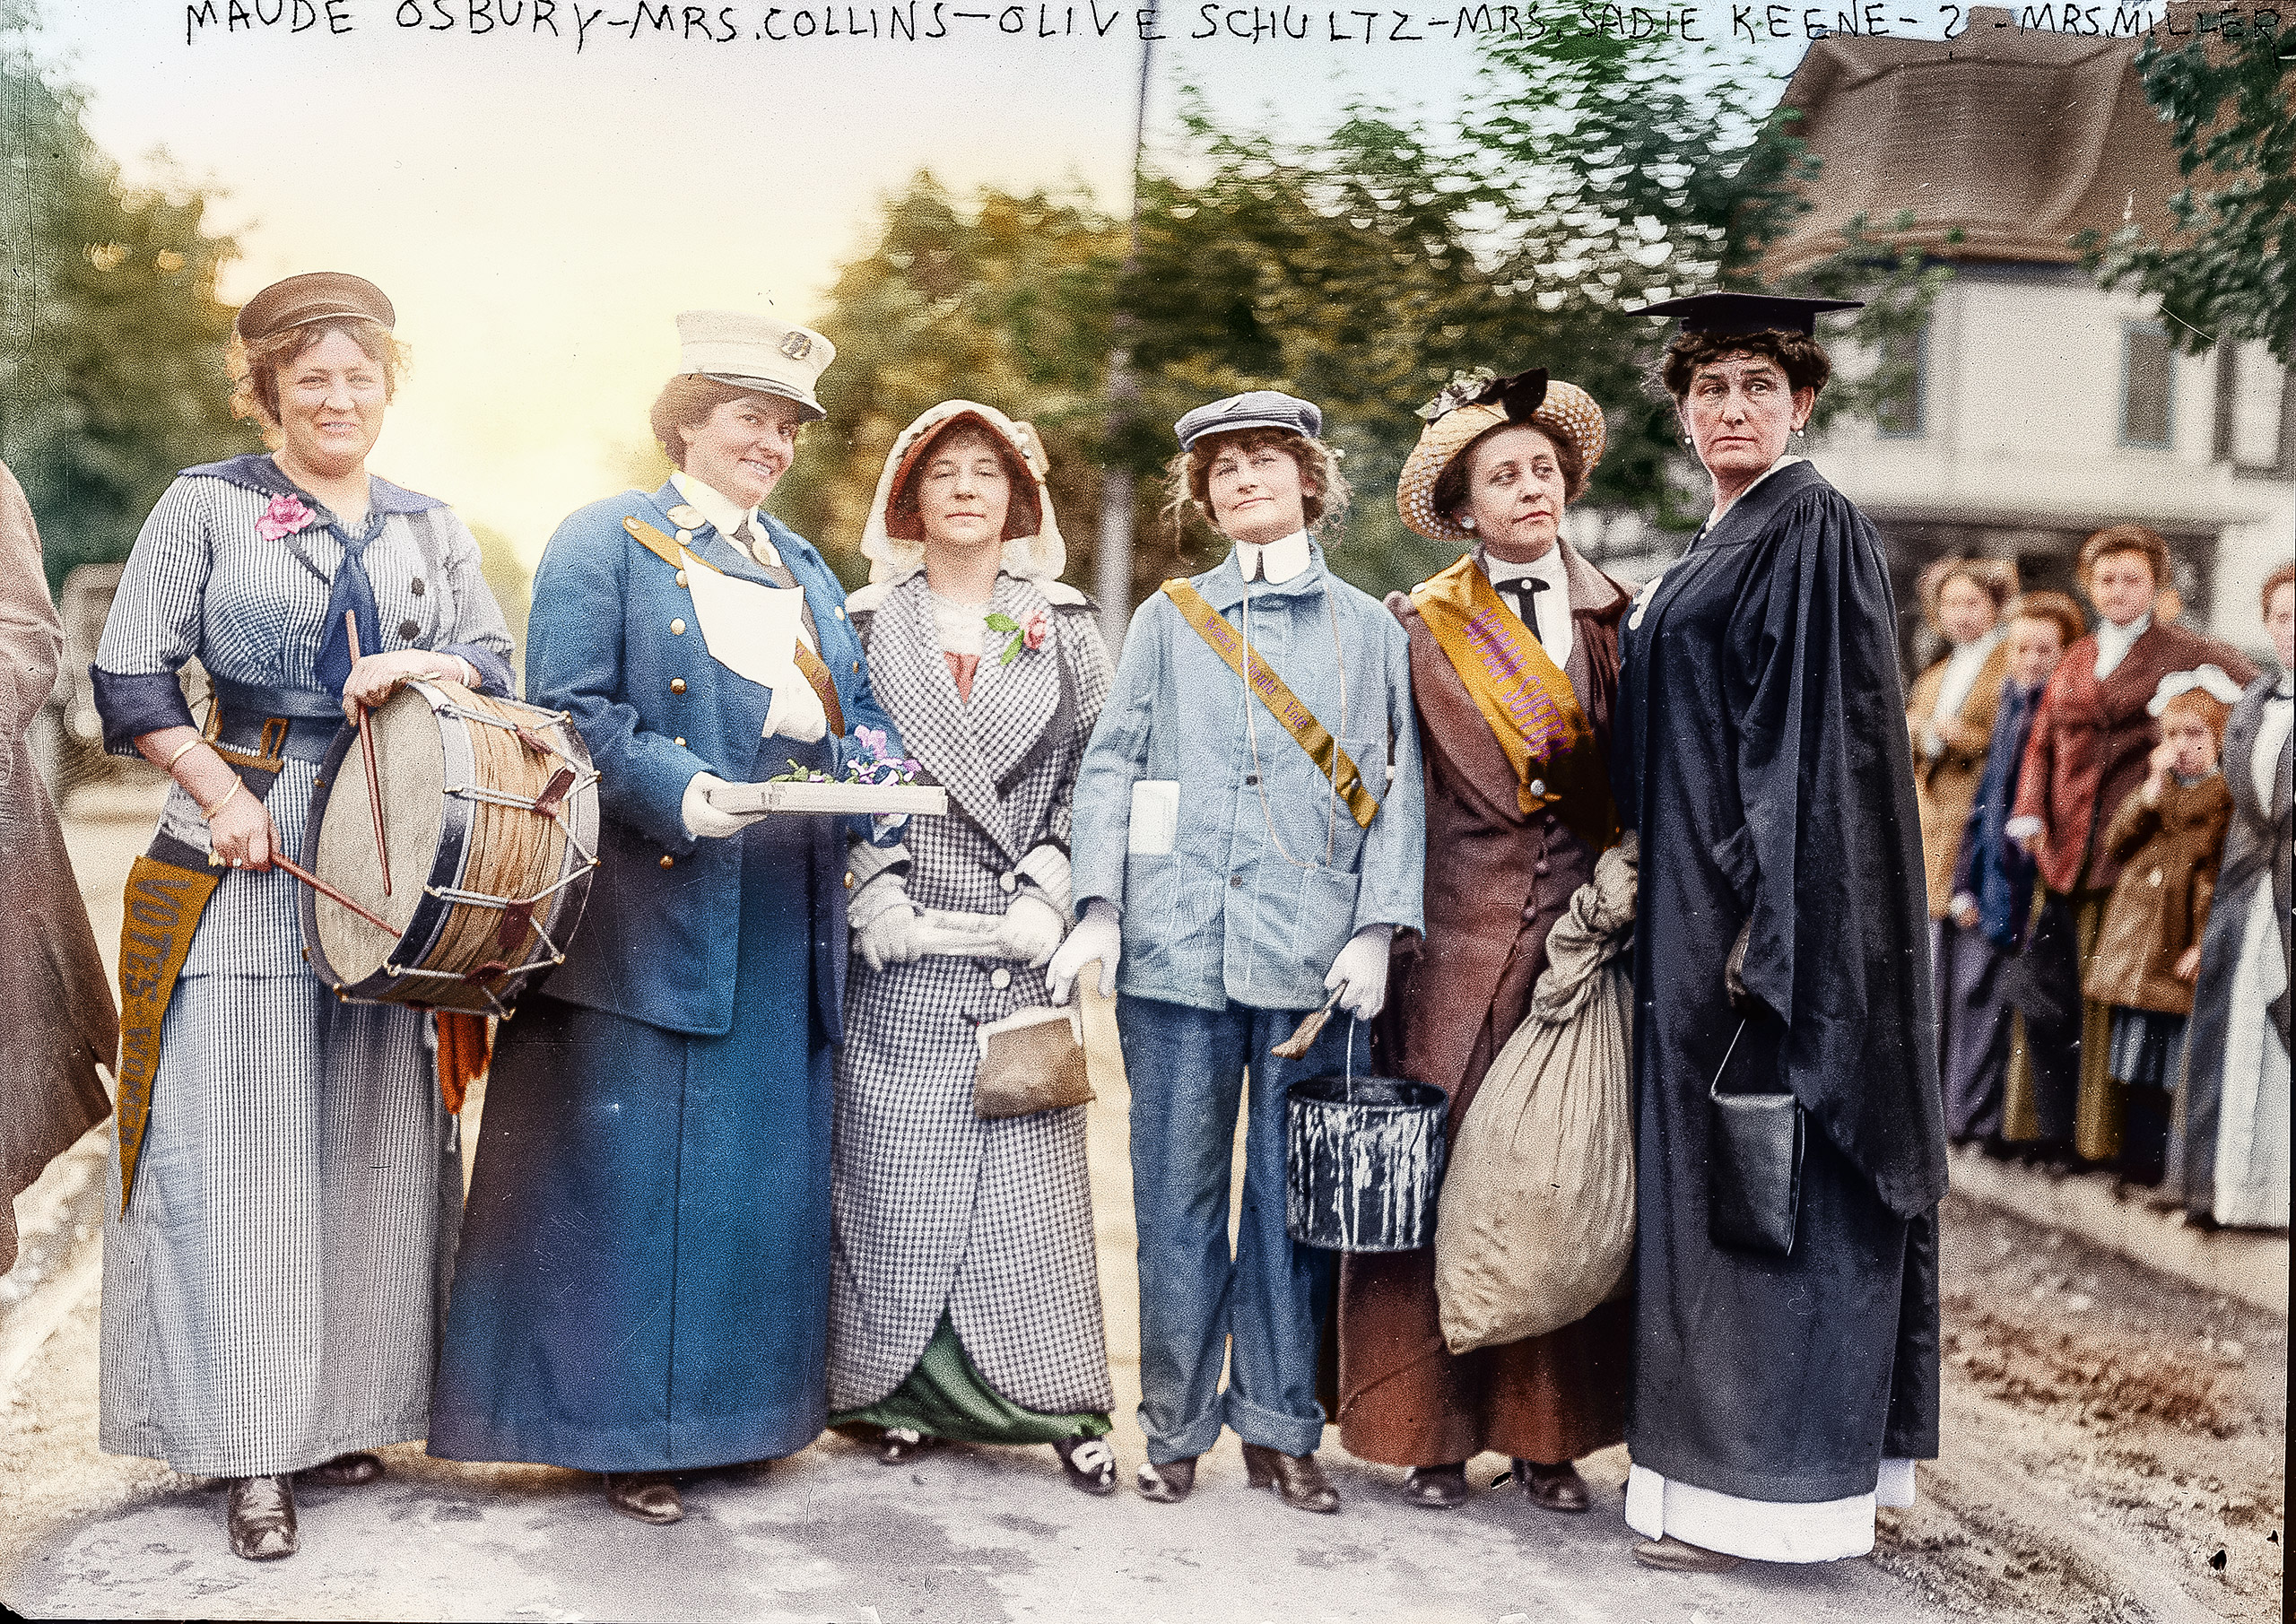 A Women's Suffrage Parade in Long Island, 1913. Mrs. John Ocksbury marching as a drummer and Miss Grace Collins marching as a fire department captain.